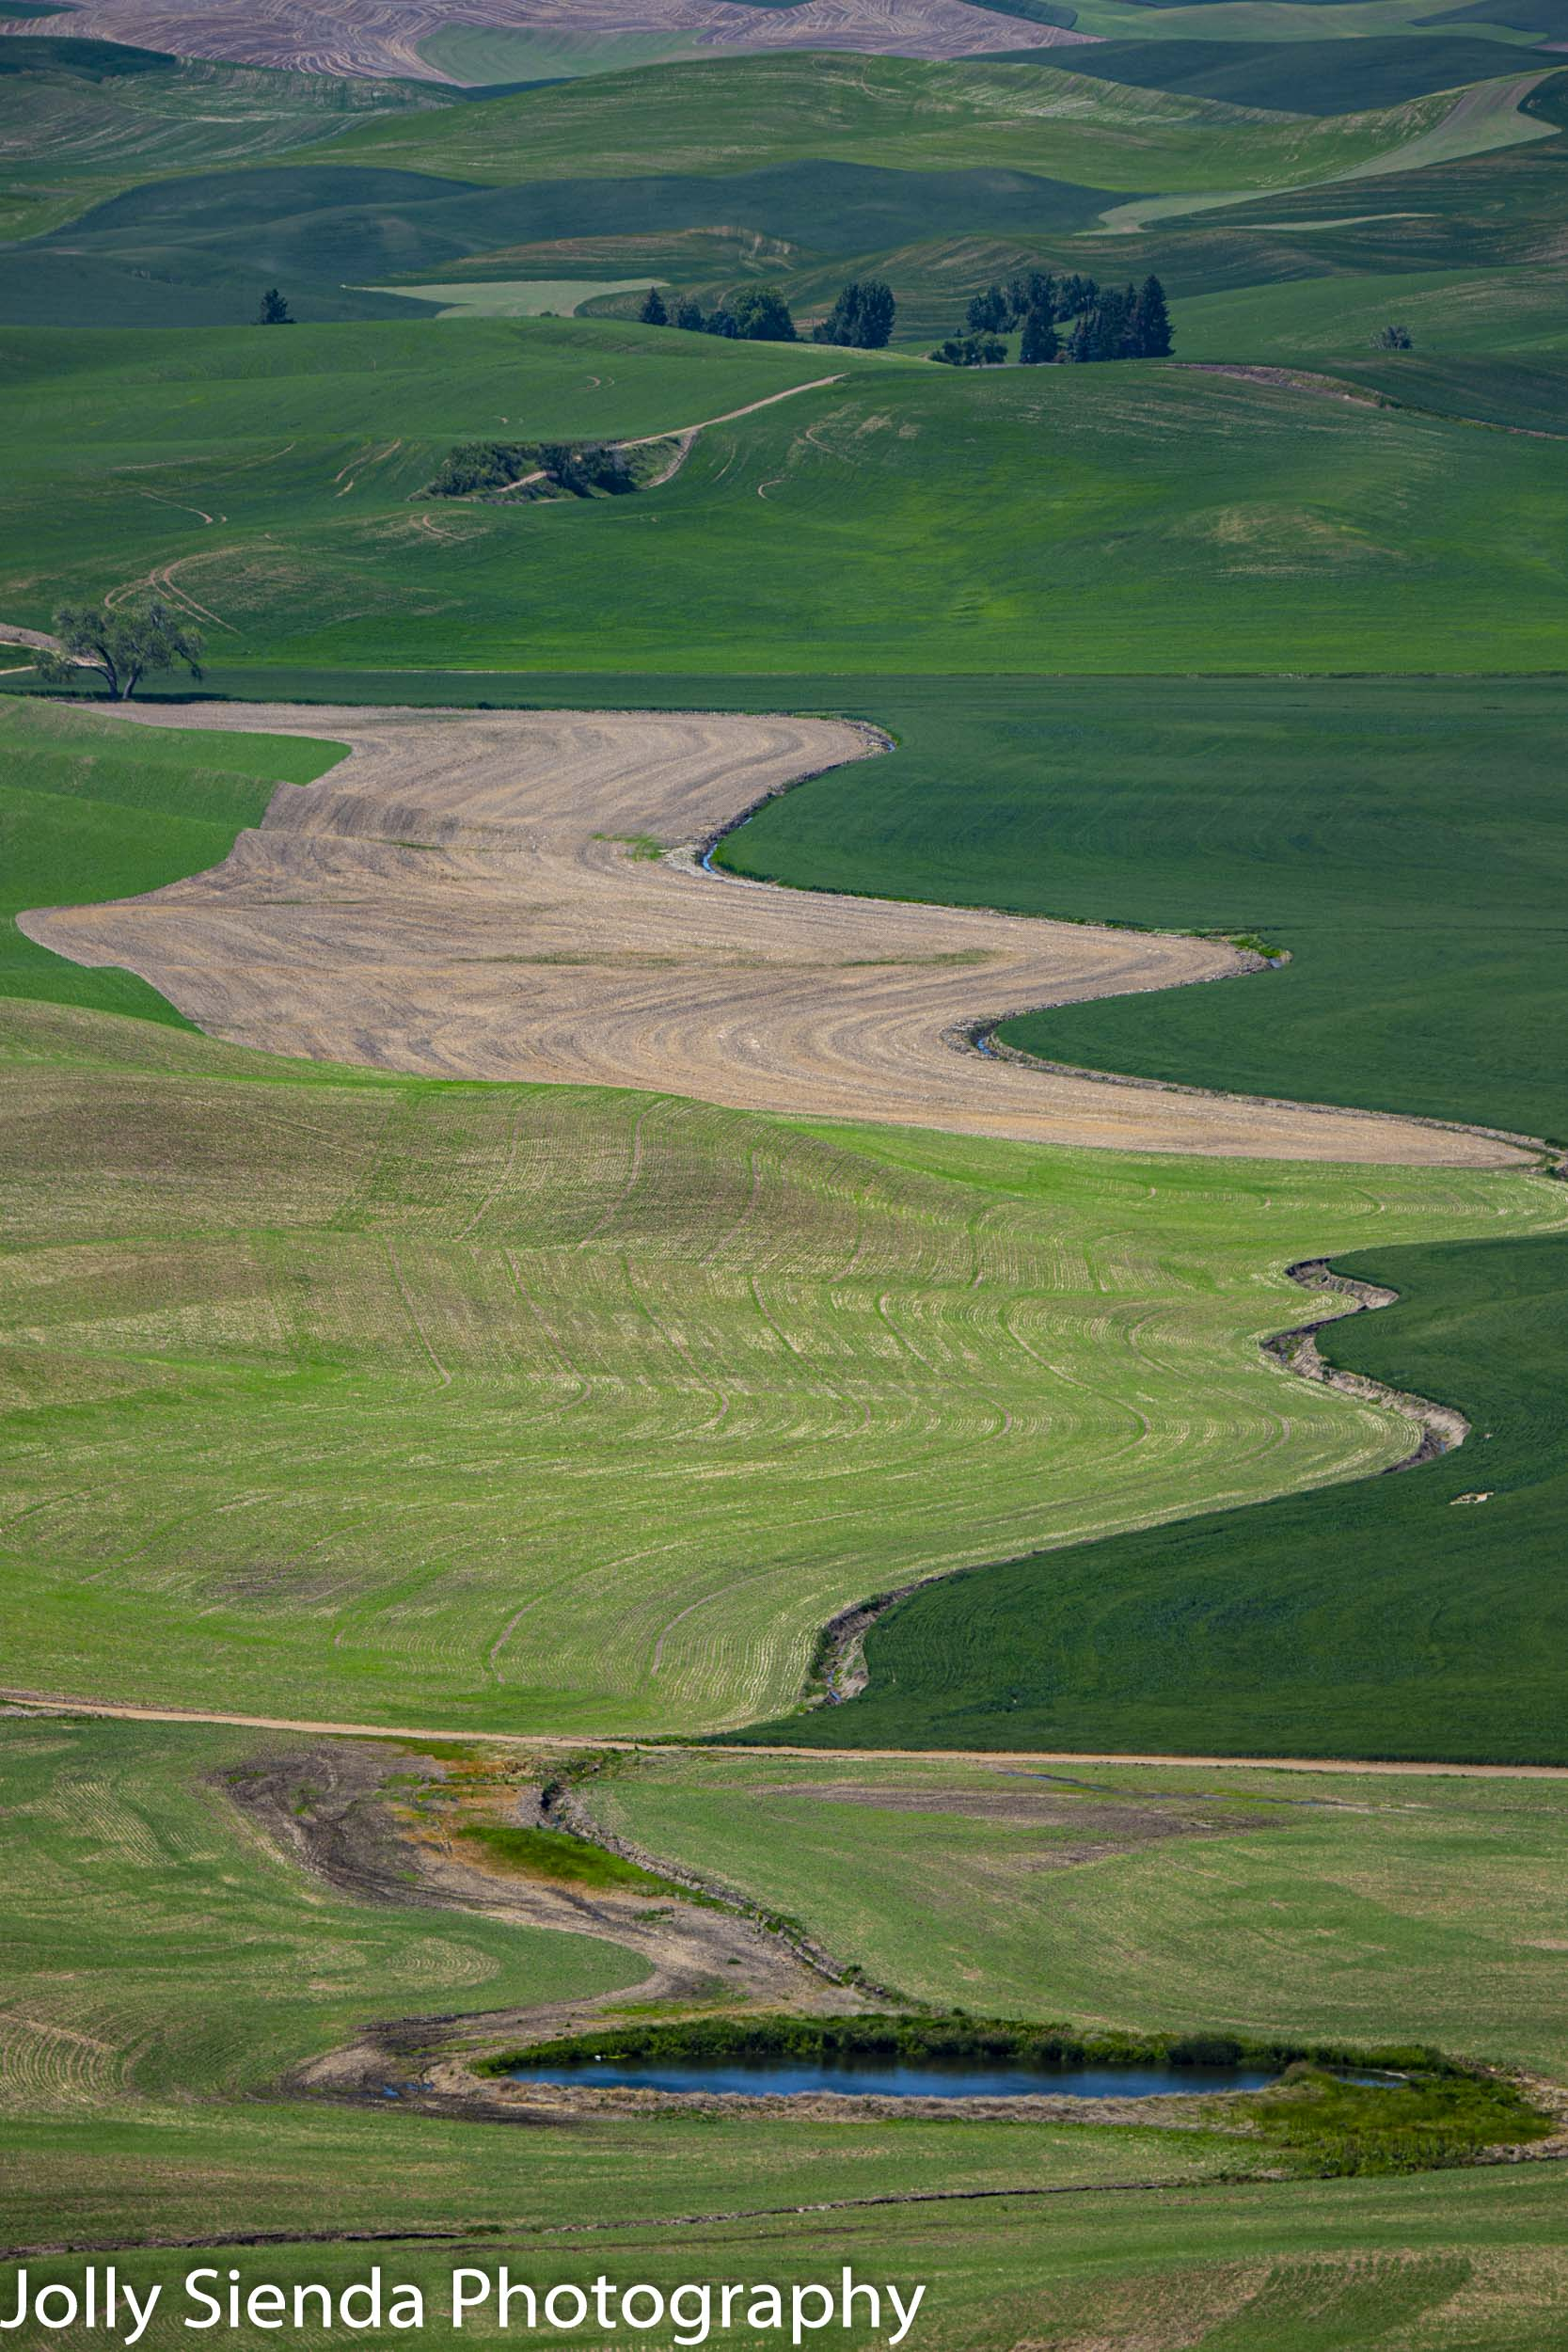 Curvy shades of green and trees dot the Palouse